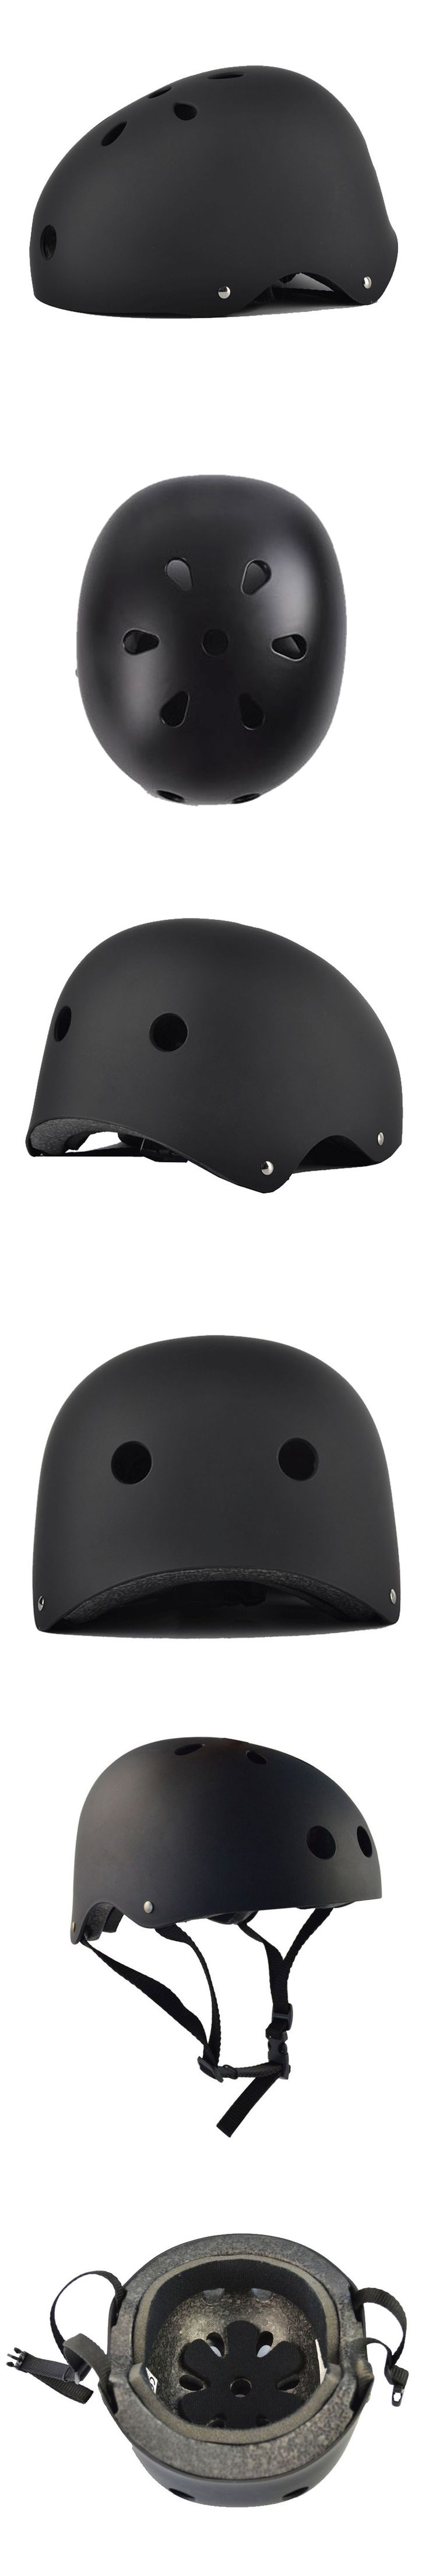 Skate Scooter Stunt Bike Bicycle Cycling Crash Safety Helmet Skateboard S M L Size For Children Men Women